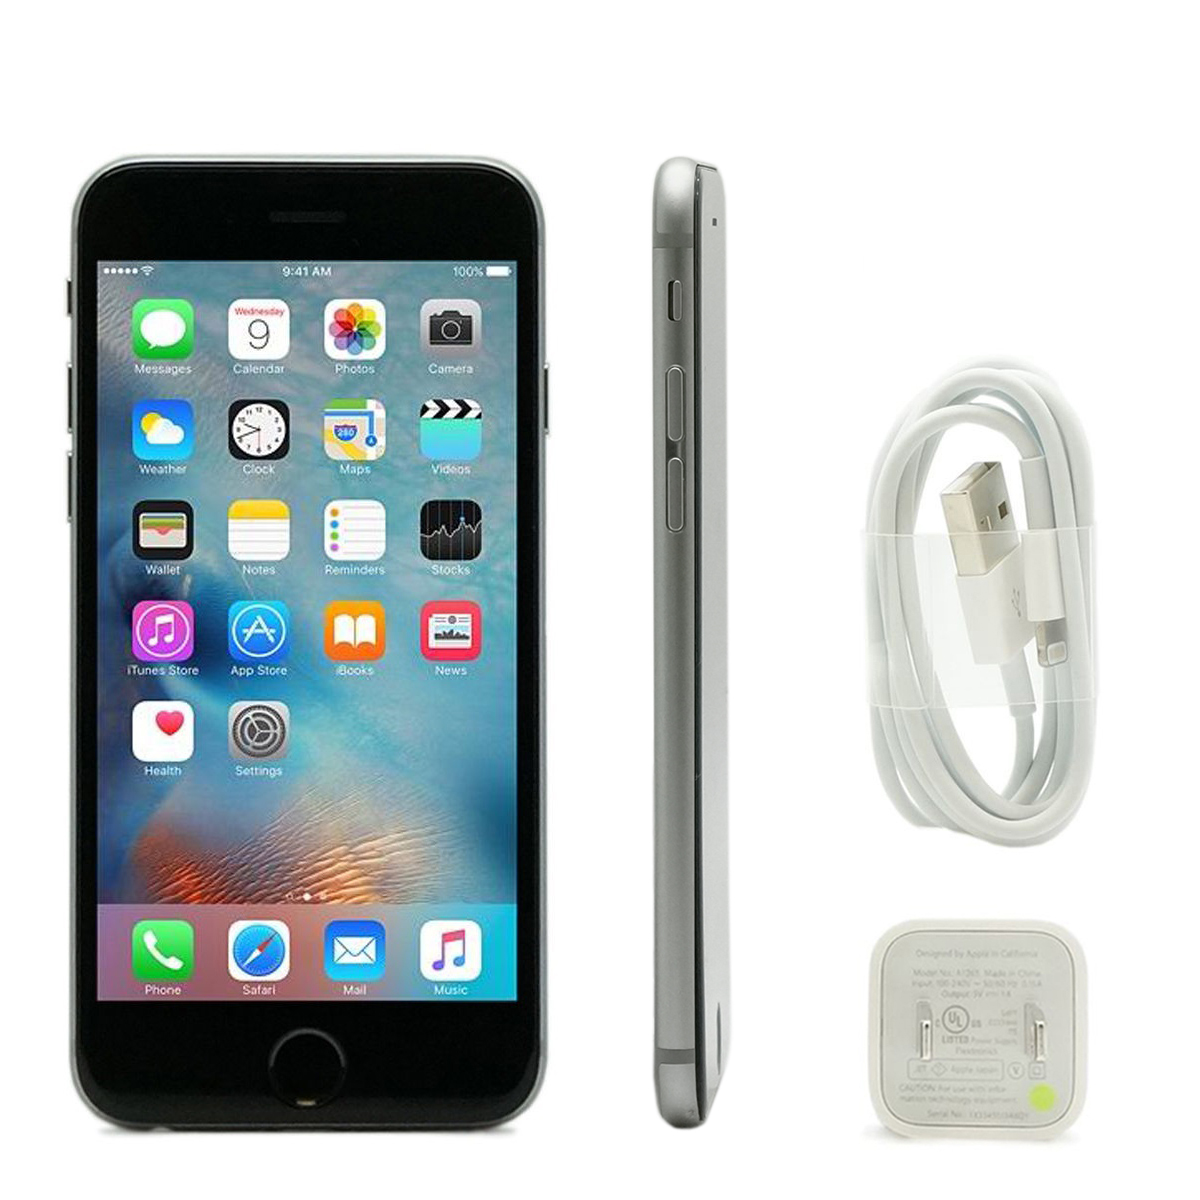 MINT Apple iPhone 6 16GB/64GB/128GB AT&T Smartphone Gold Gray Silver (Refurbished)